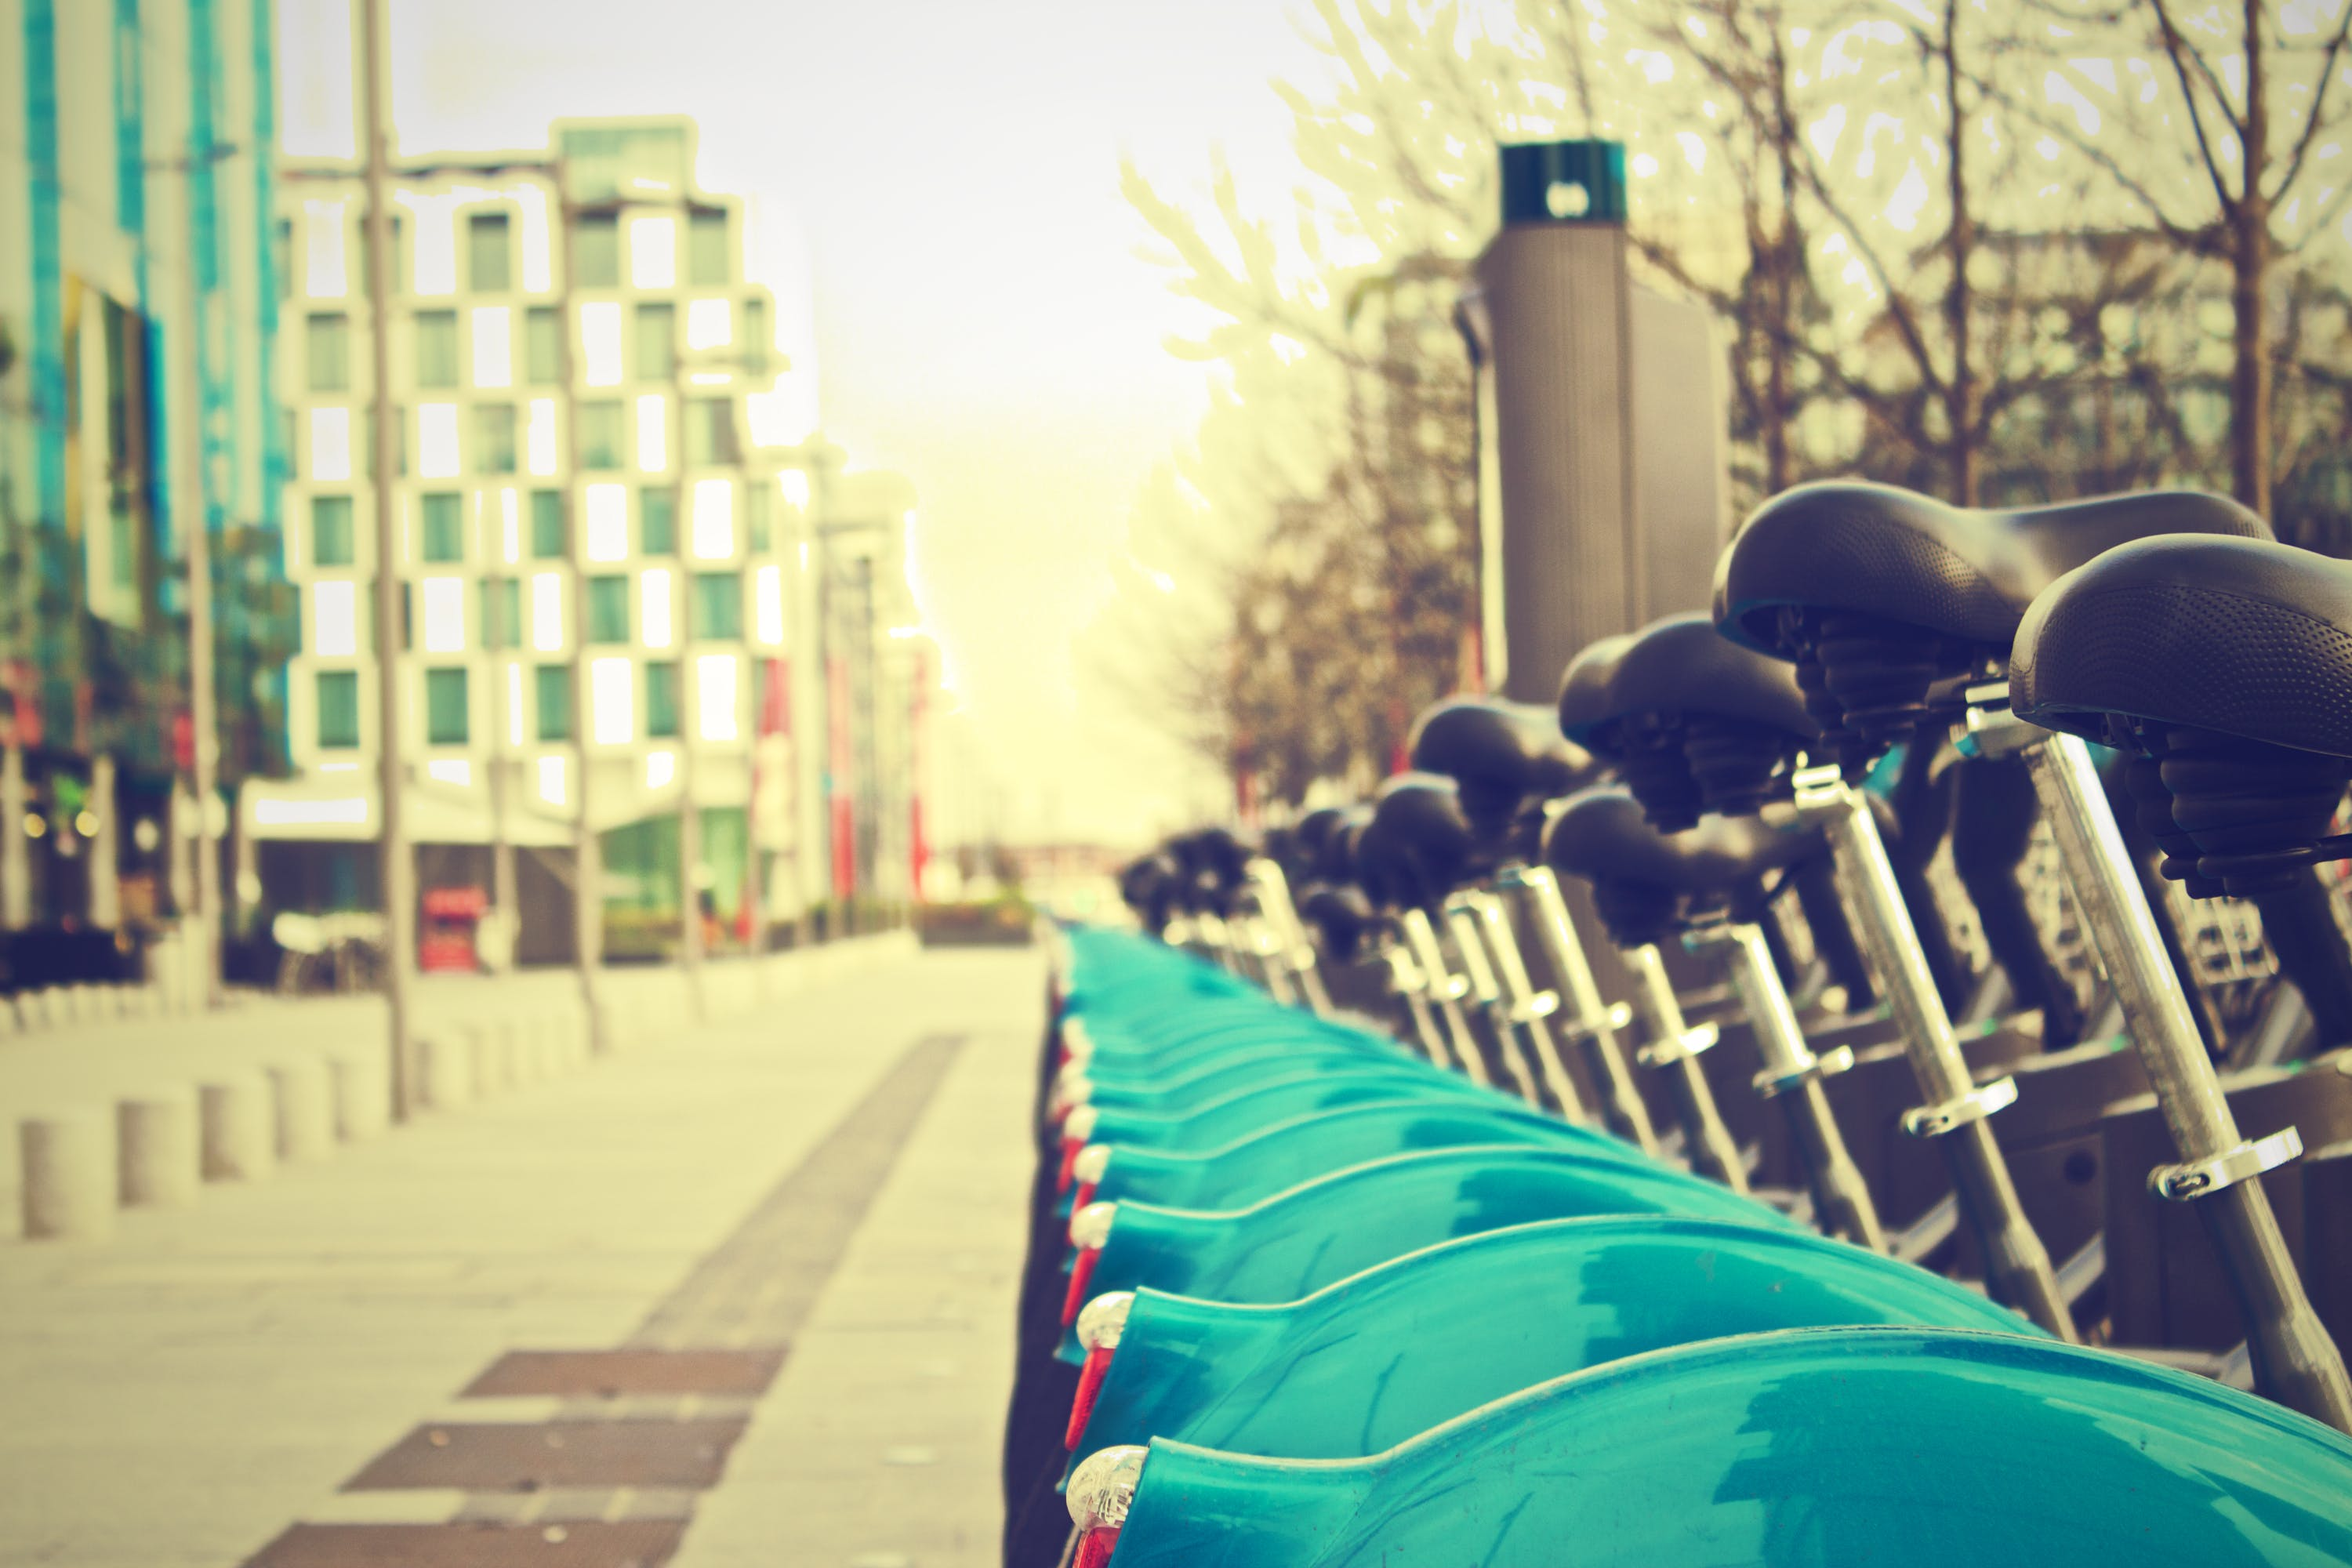 Bicycles Parked Near Street